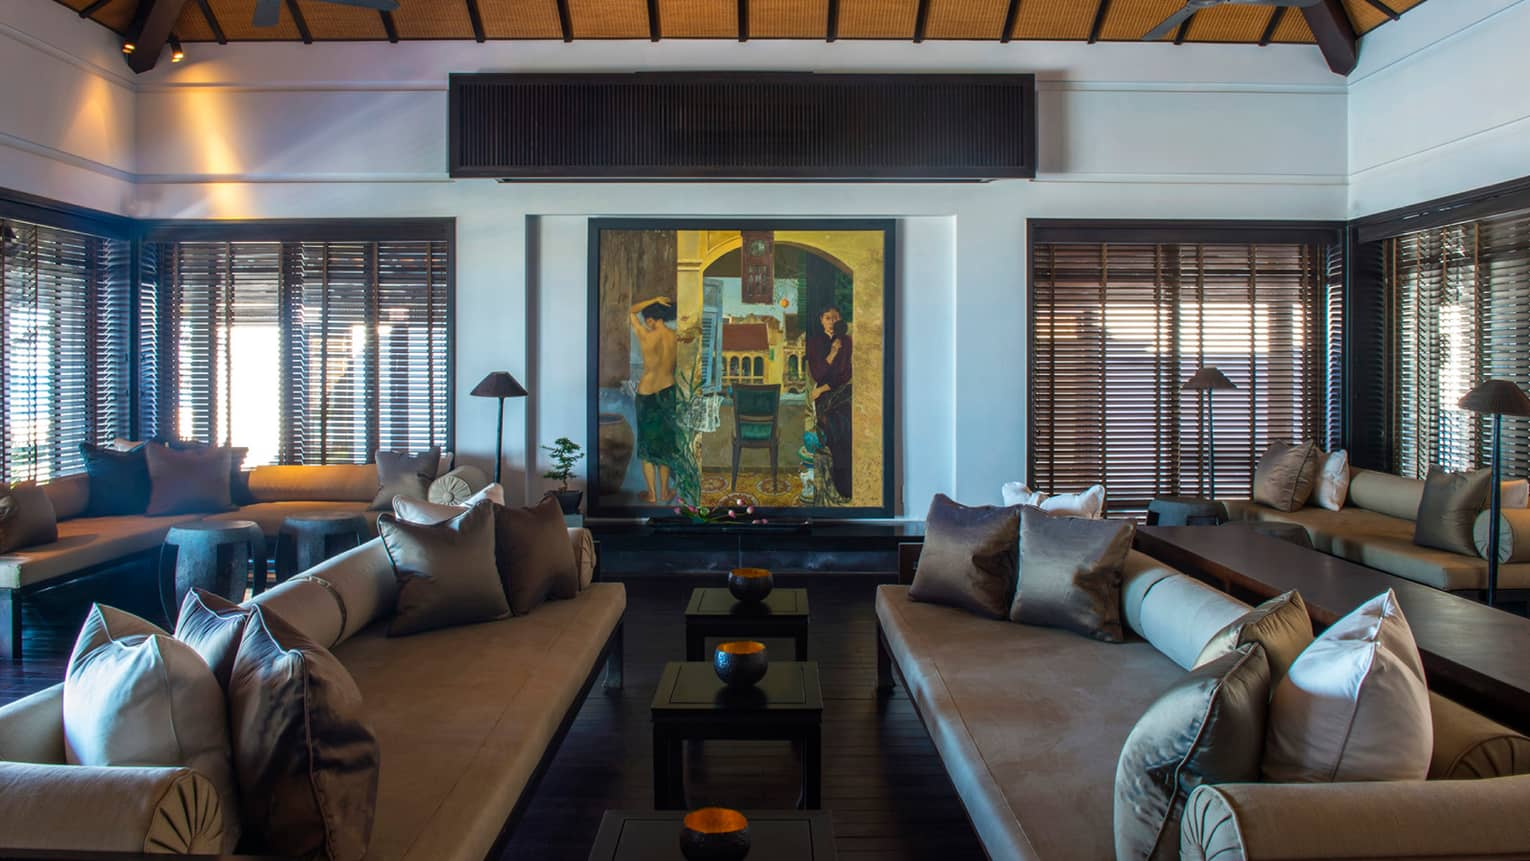 Large colourful oil painting on wall over two sofas, tables with brass bowls, under soaring wood ceilings